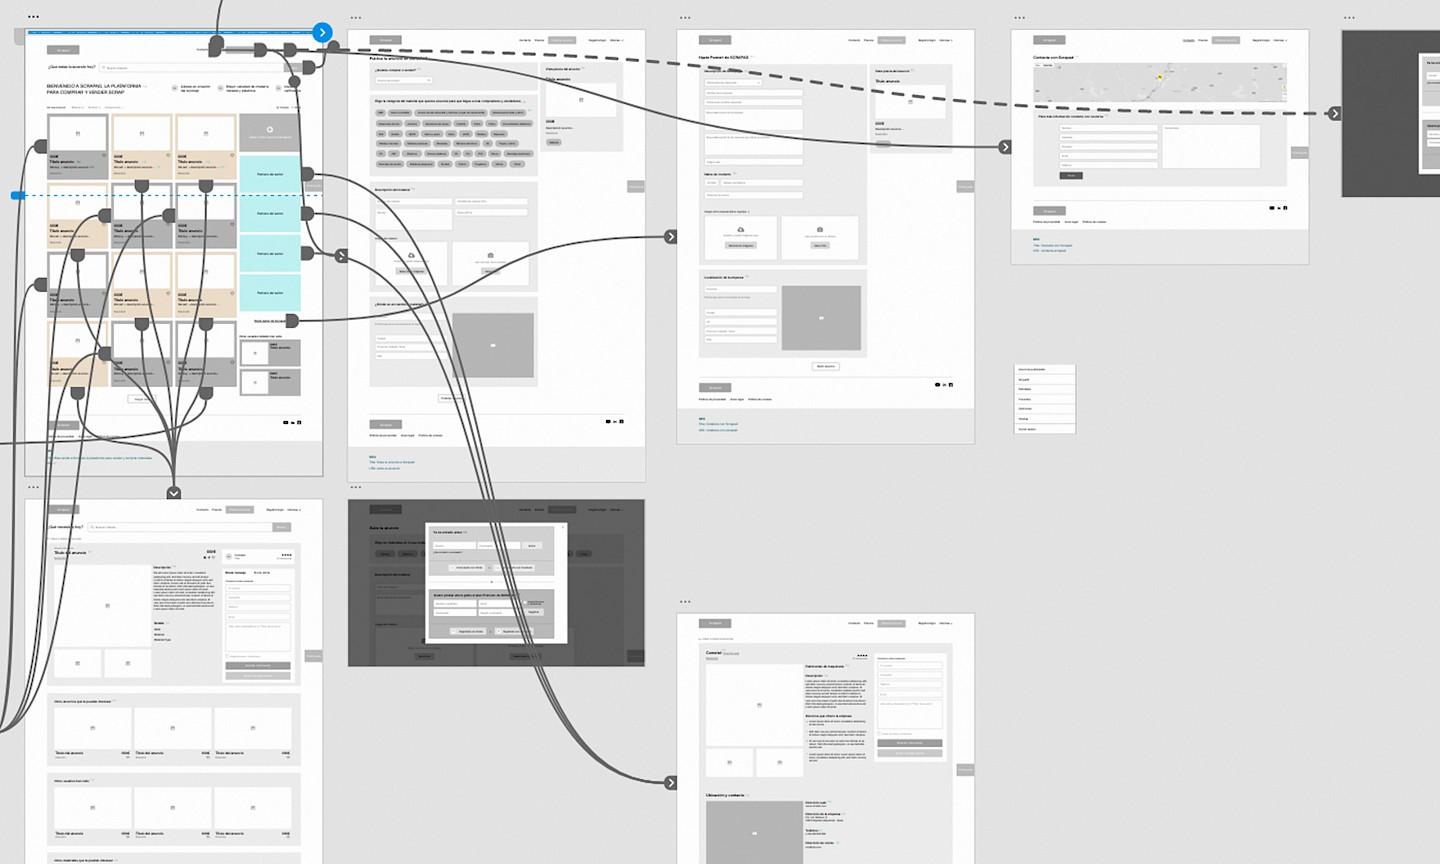 wireframe scrapad 2 branding move scrap flow digital branding industrial webapp